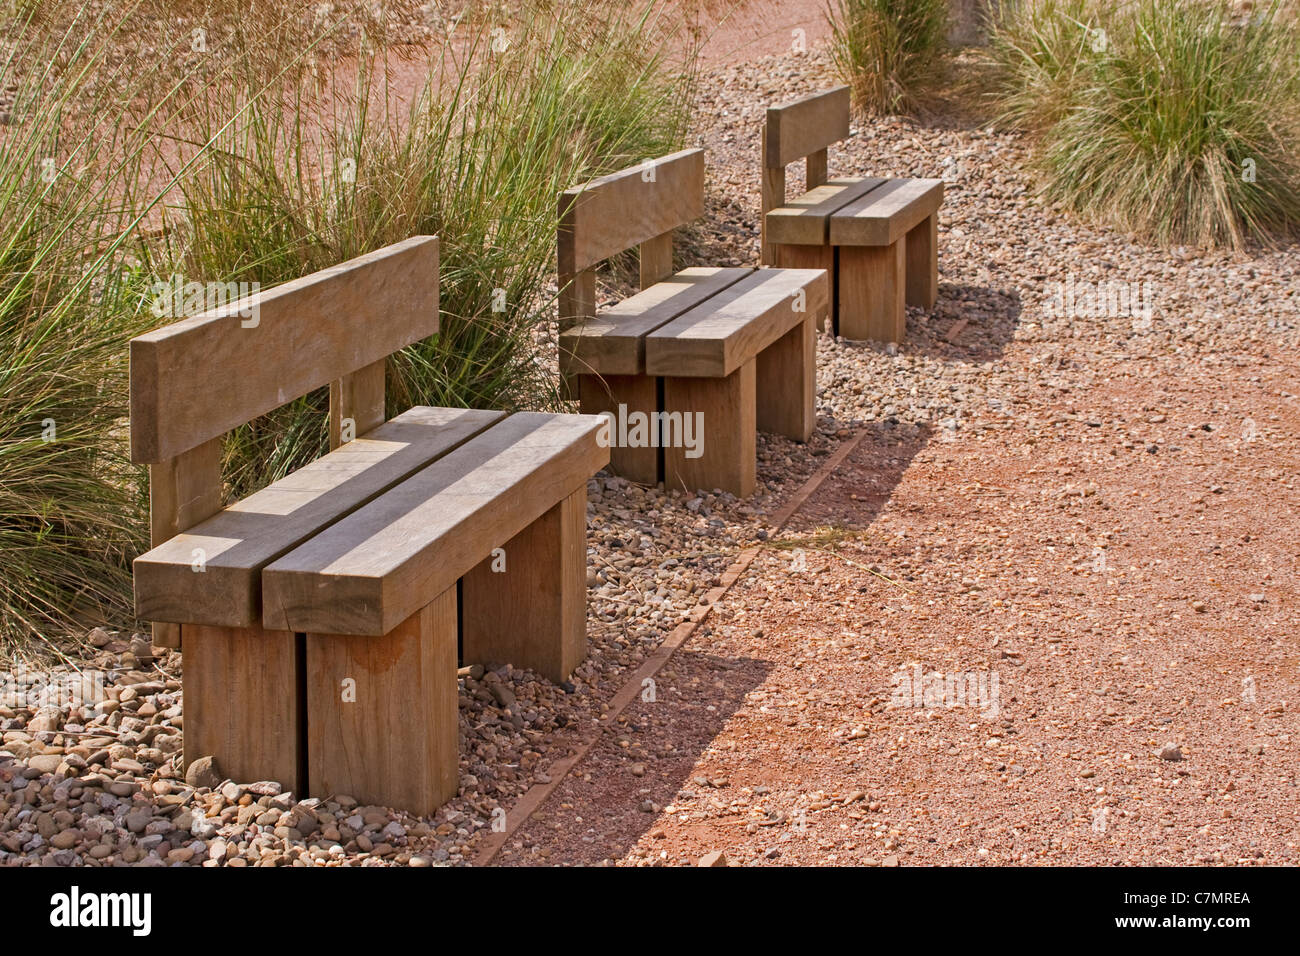 Wooden Park Bench or seat - Stock Image